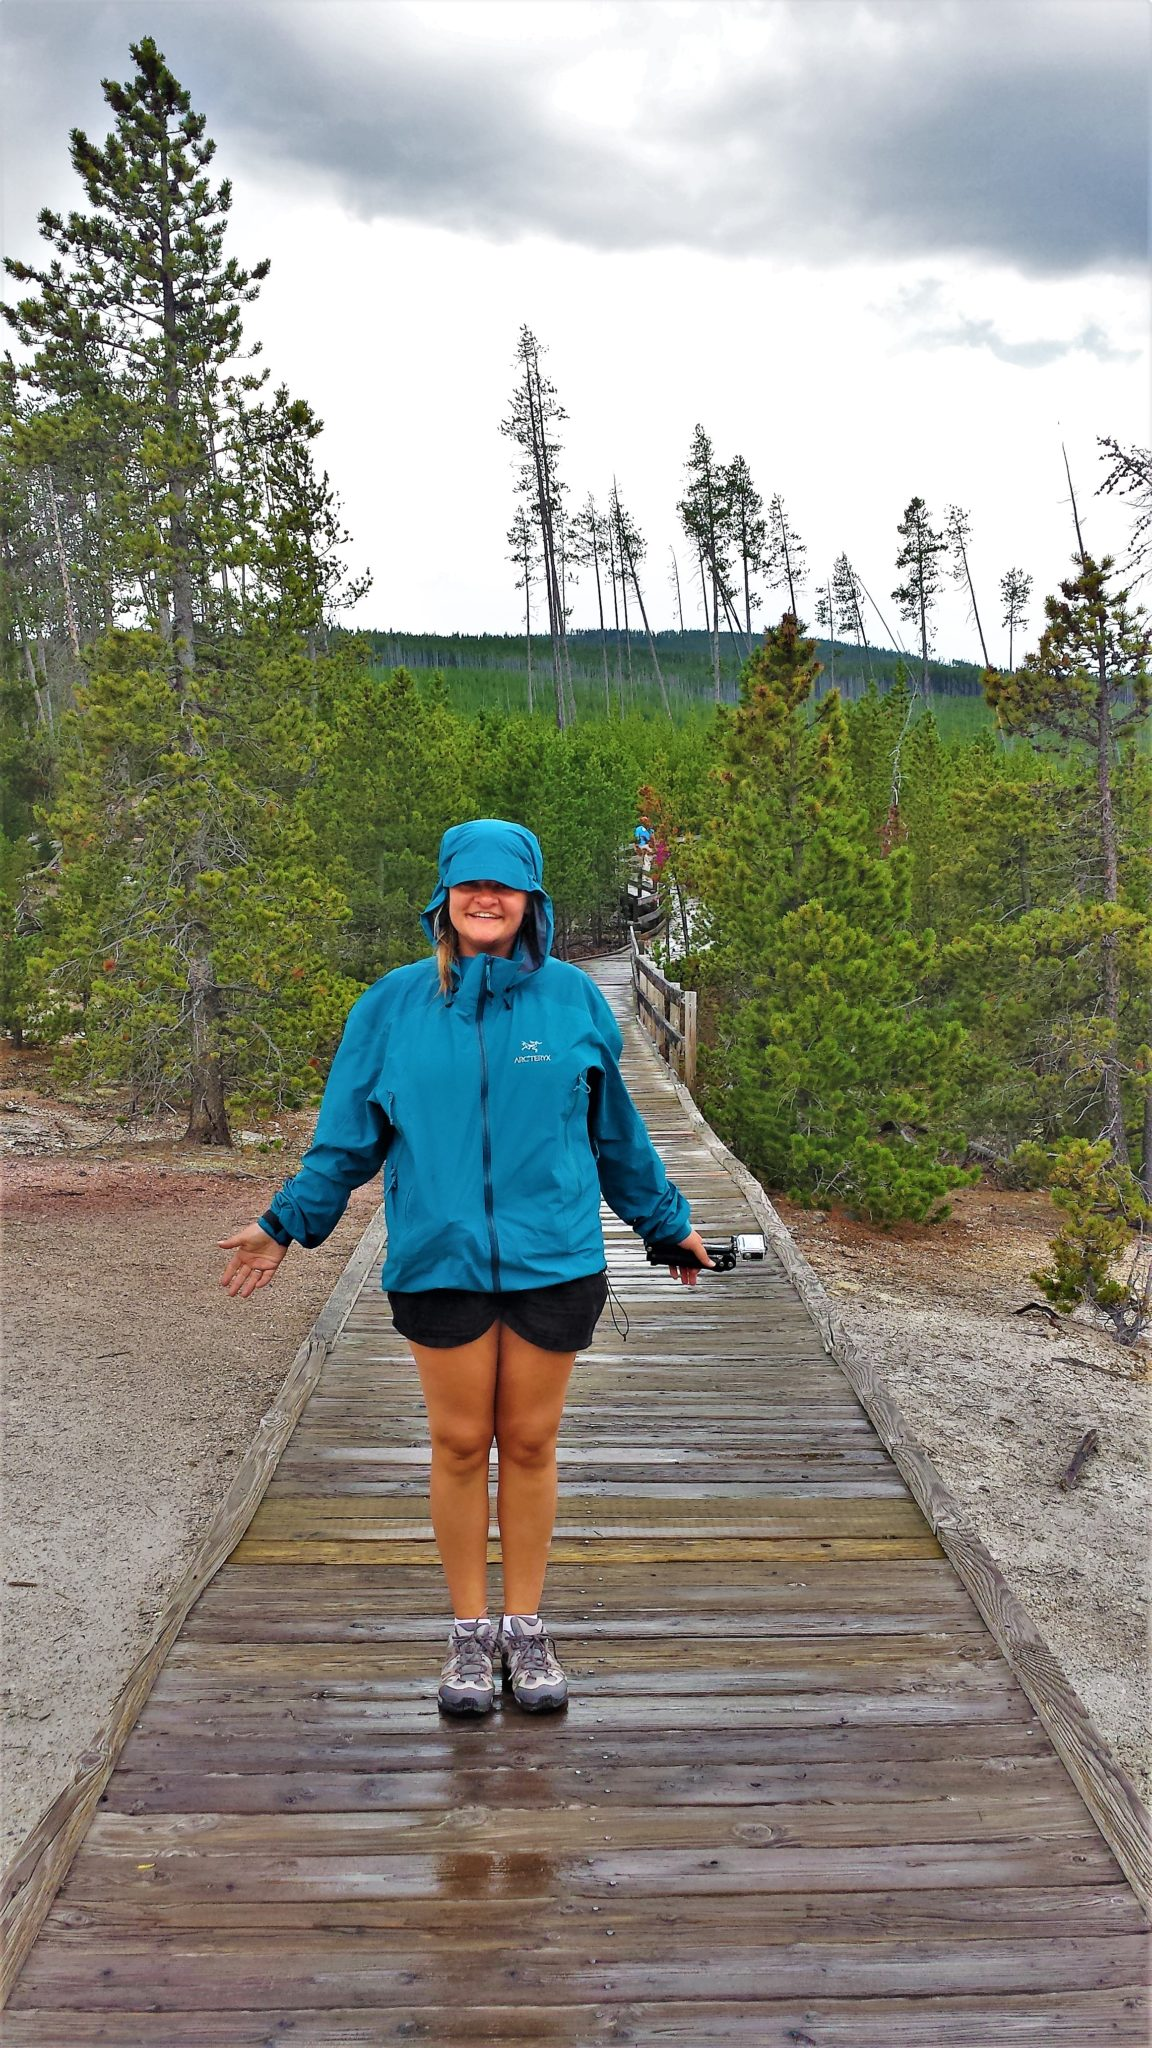 Arcteryx yellowstone national park, review of beta jacket